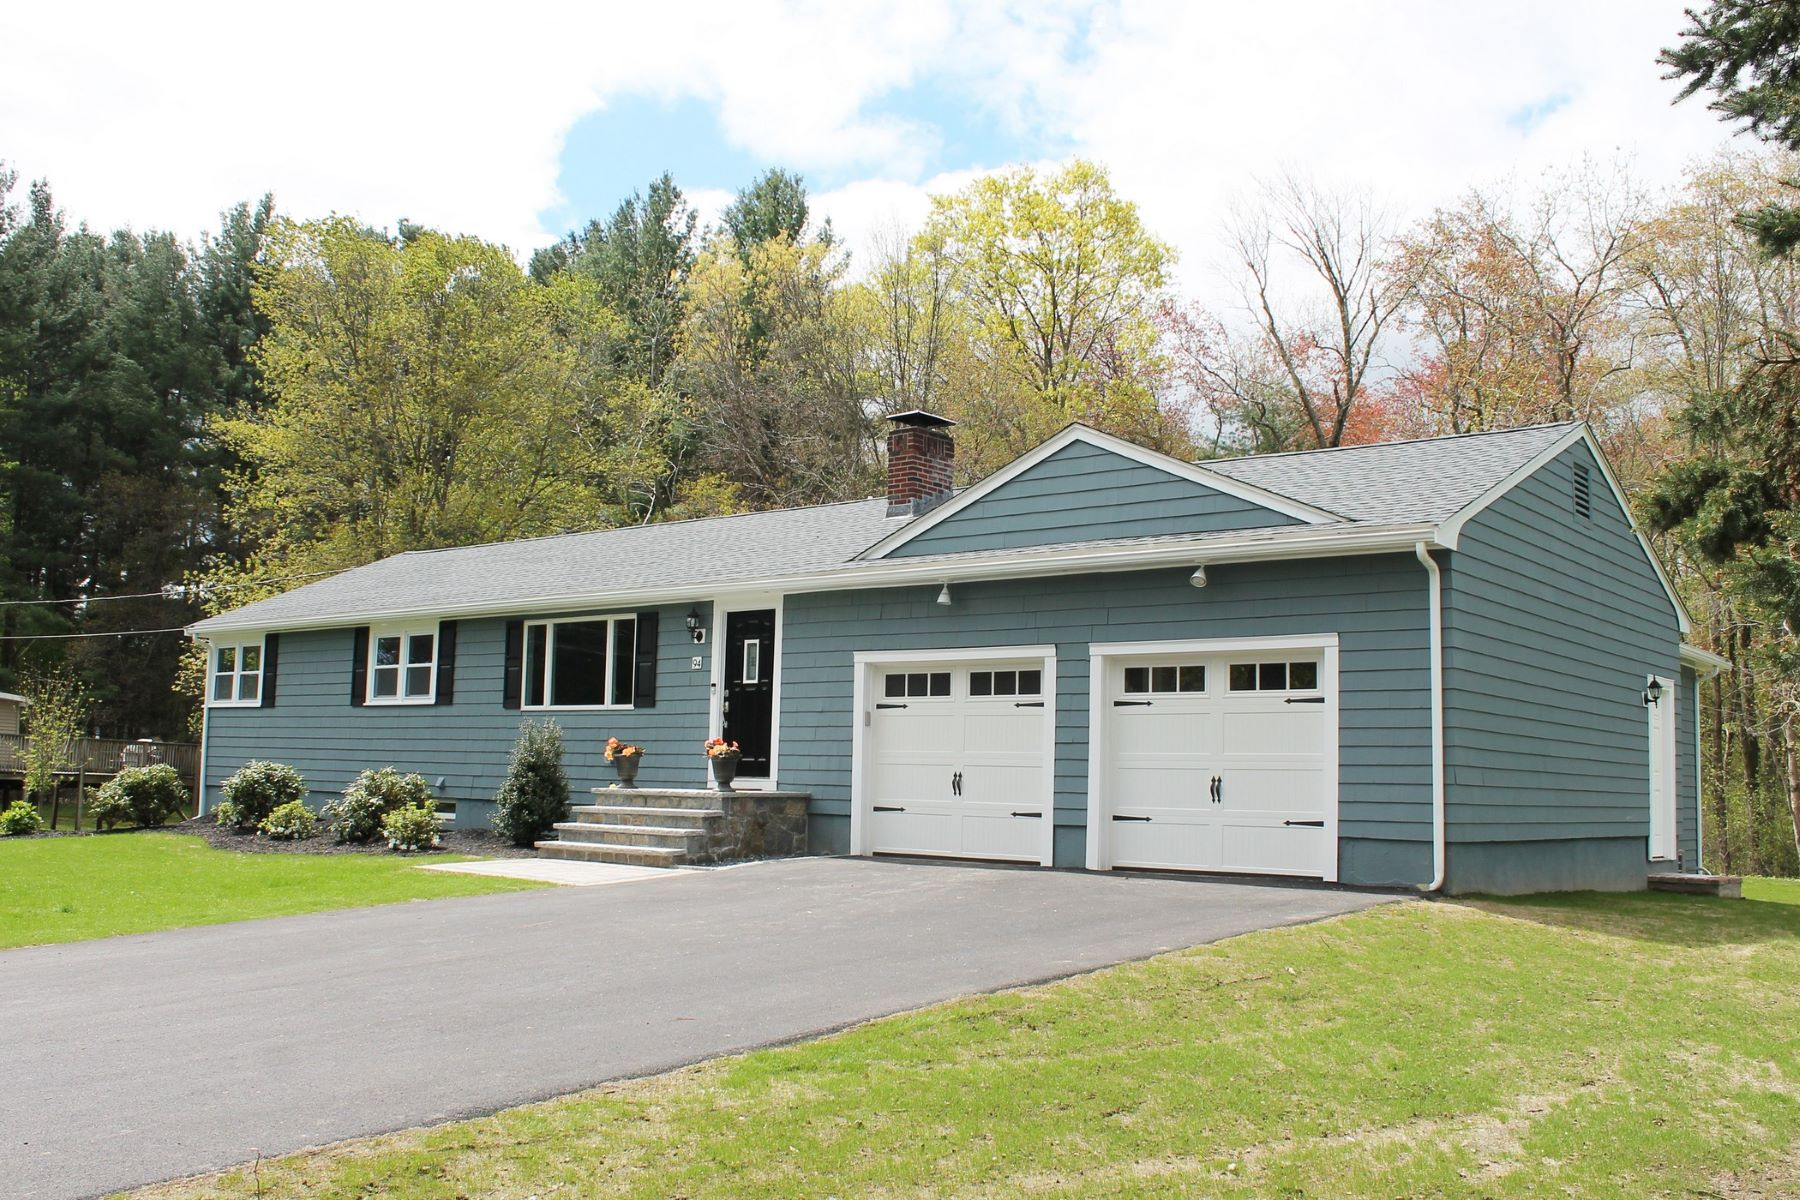 Single Family Home for Active at 94 Page Road, Bedford 94 Page Rd Bedford, Massachusetts 01730 United States